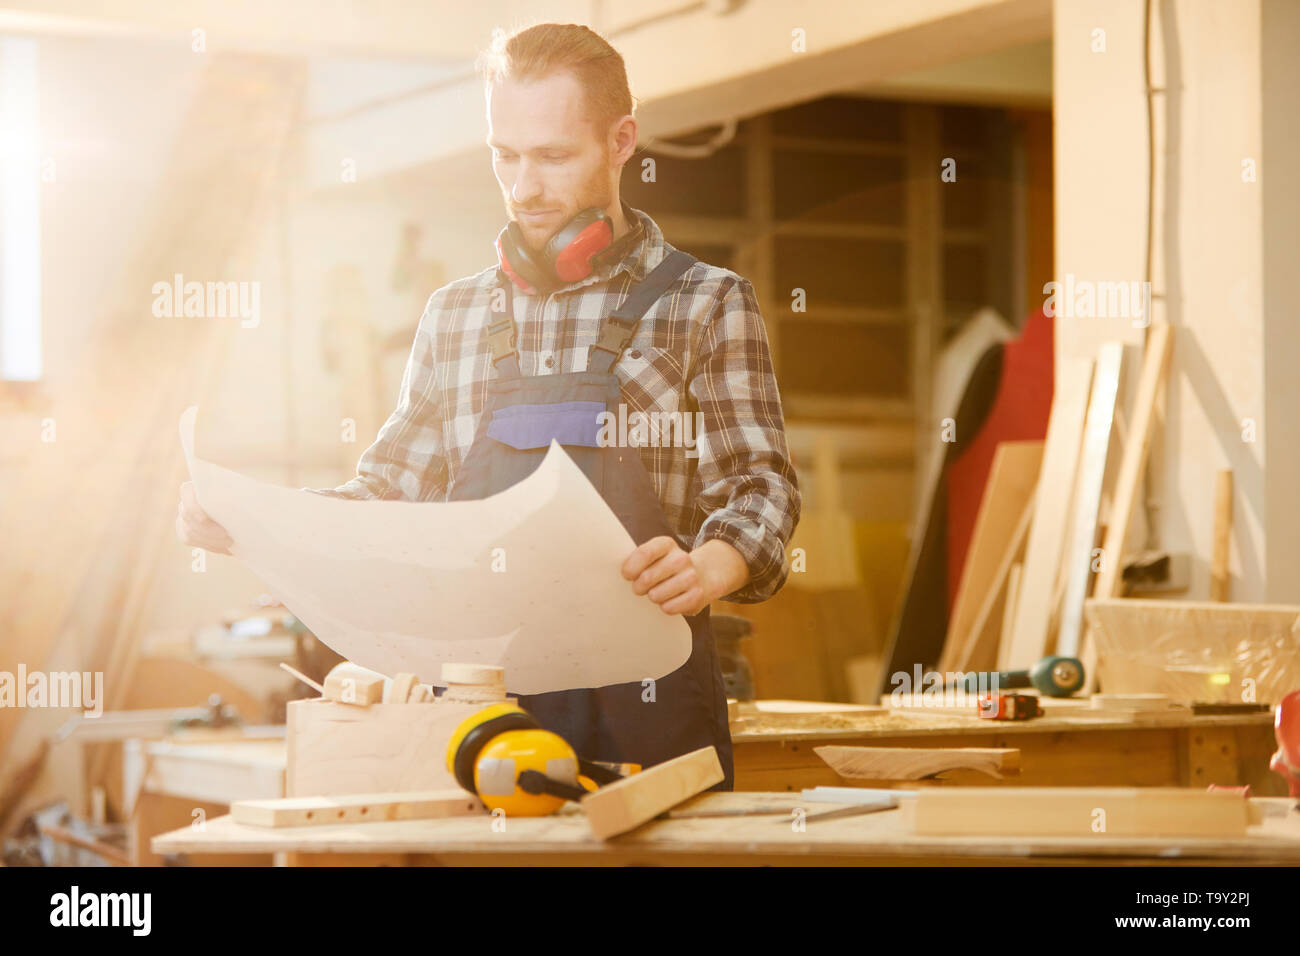 Waist up portrait of contemporary carpenter holding plans while working in joinery lit by sunlight, copy space - Stock Image